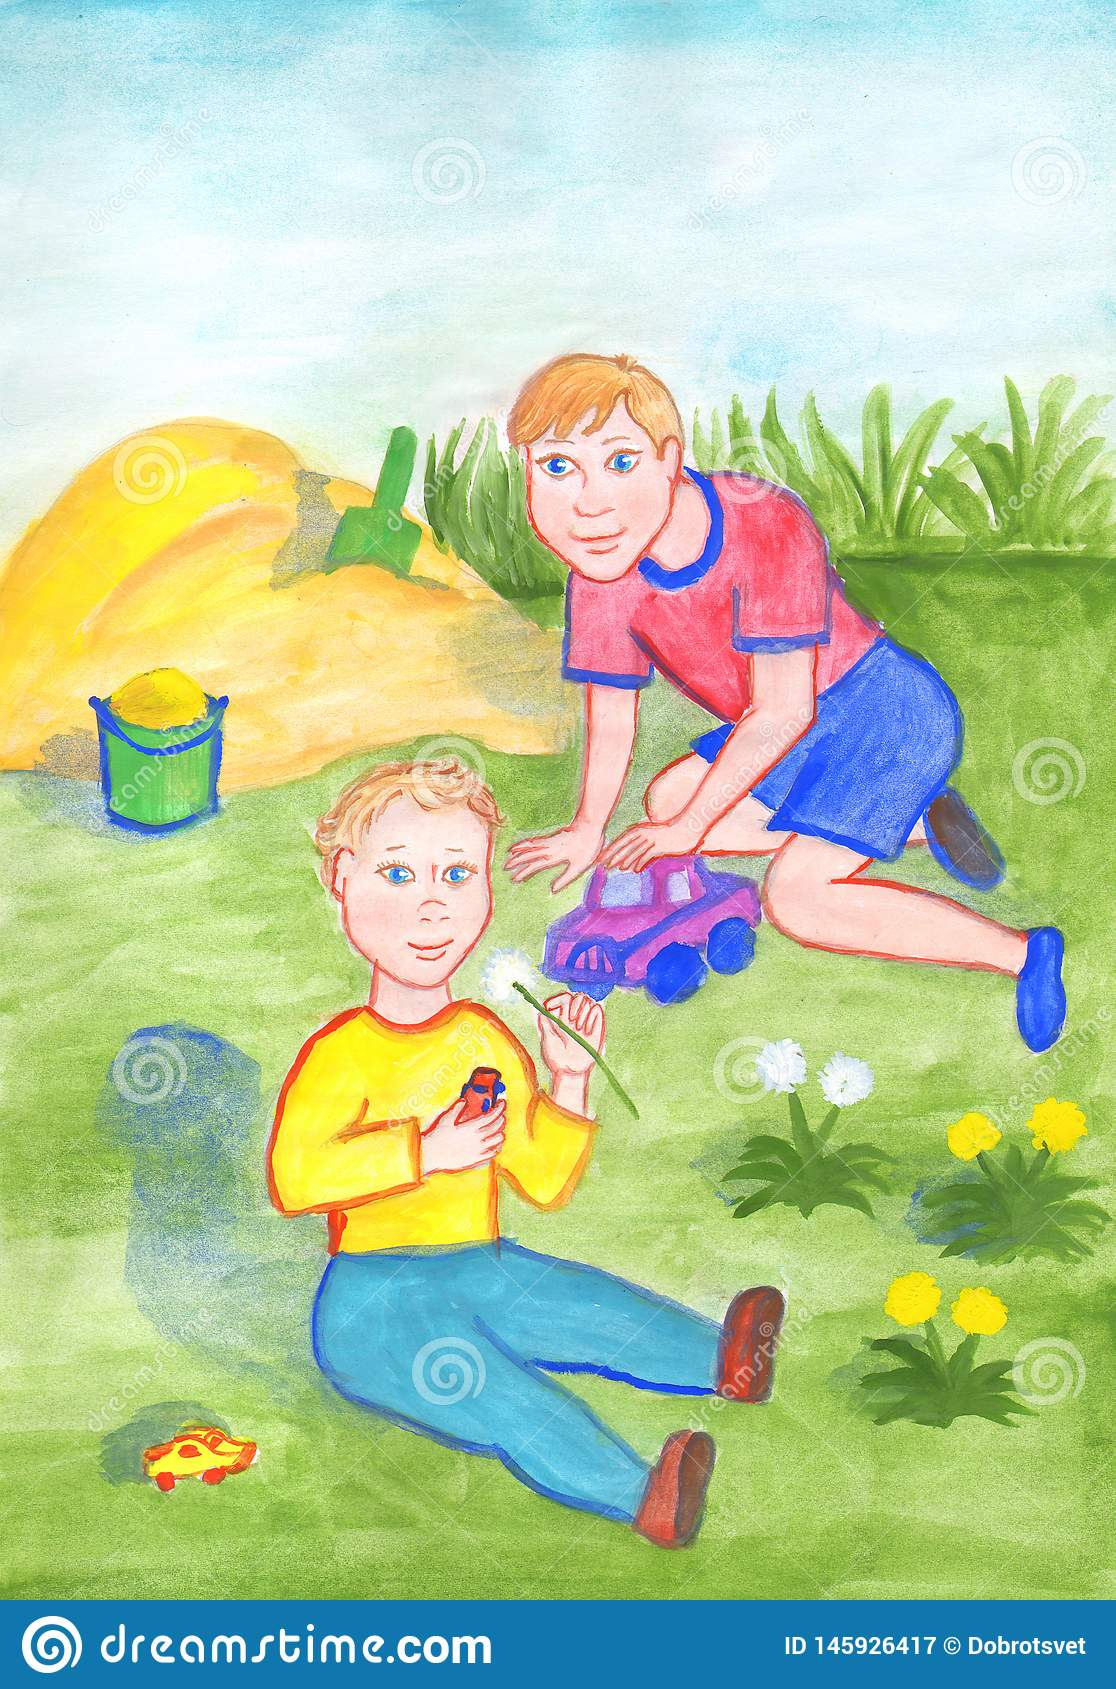 The two brothers are playing in the garden. Children in the hands of toy cars. Watercolor illustration